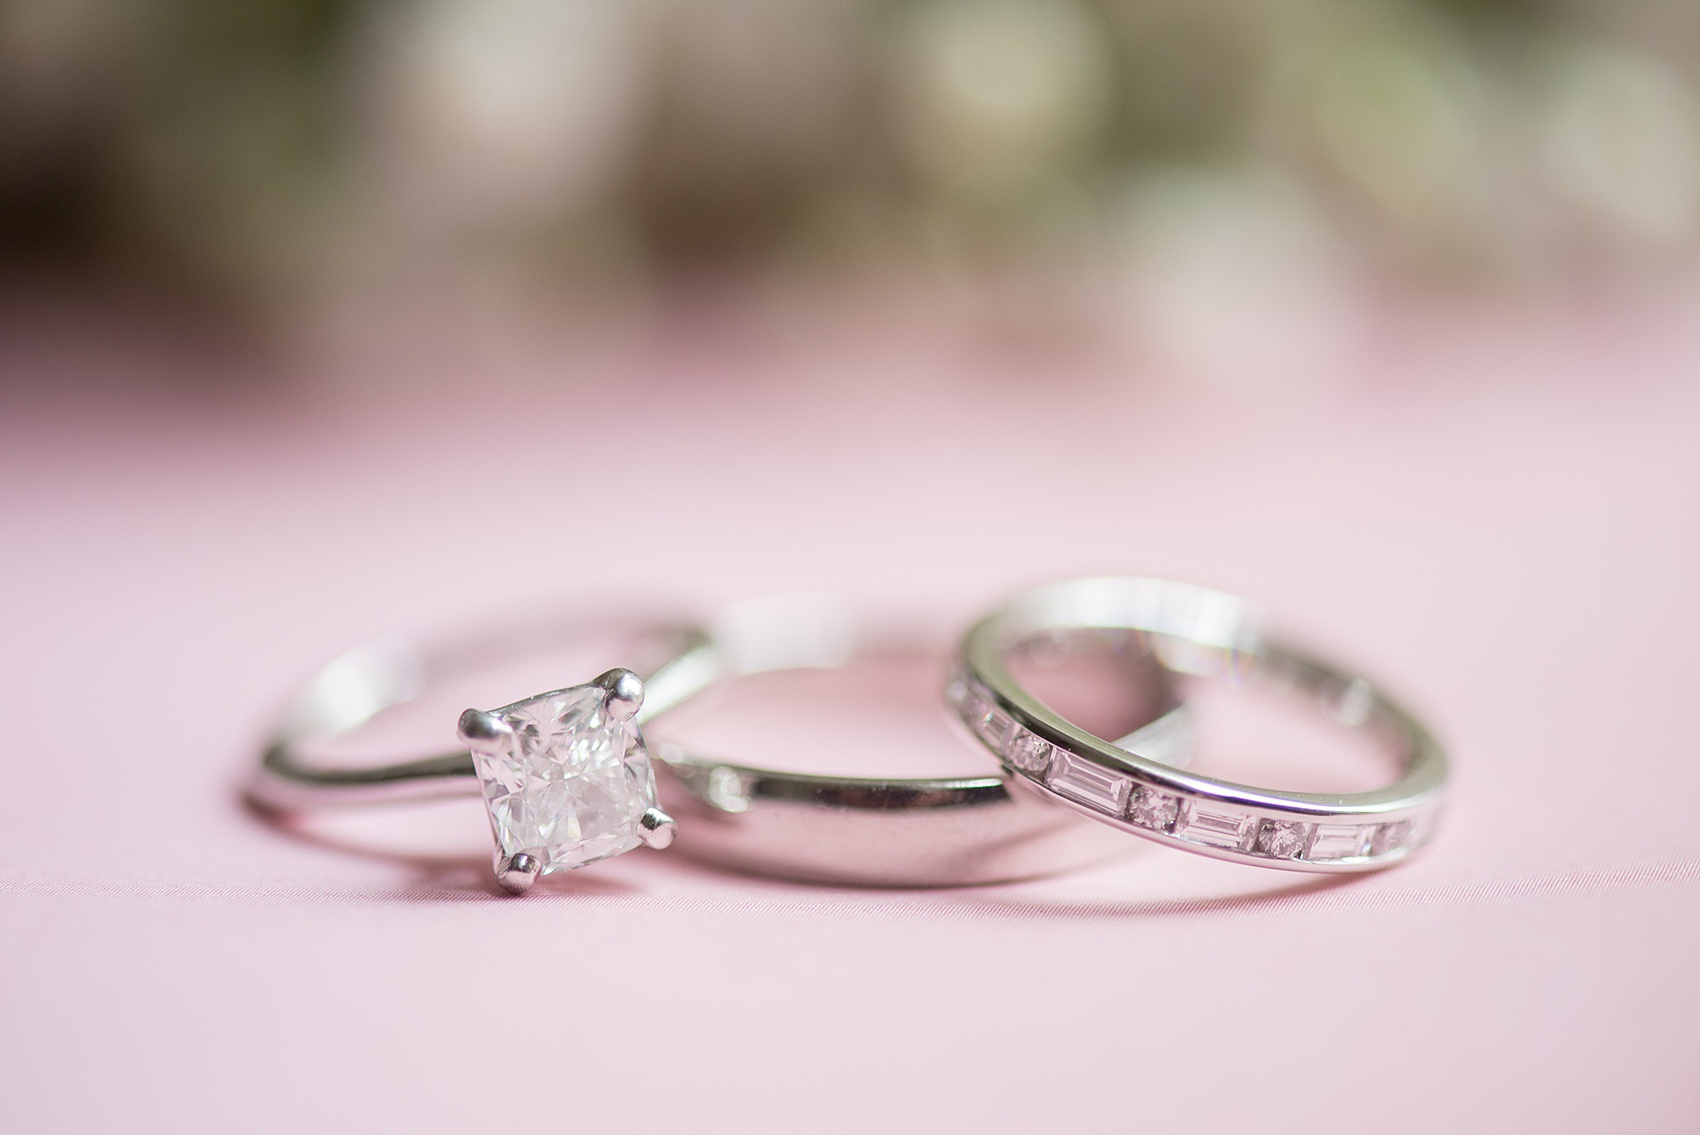 Image 1 of Diamond Cuts and Shapes for Engagement Rings